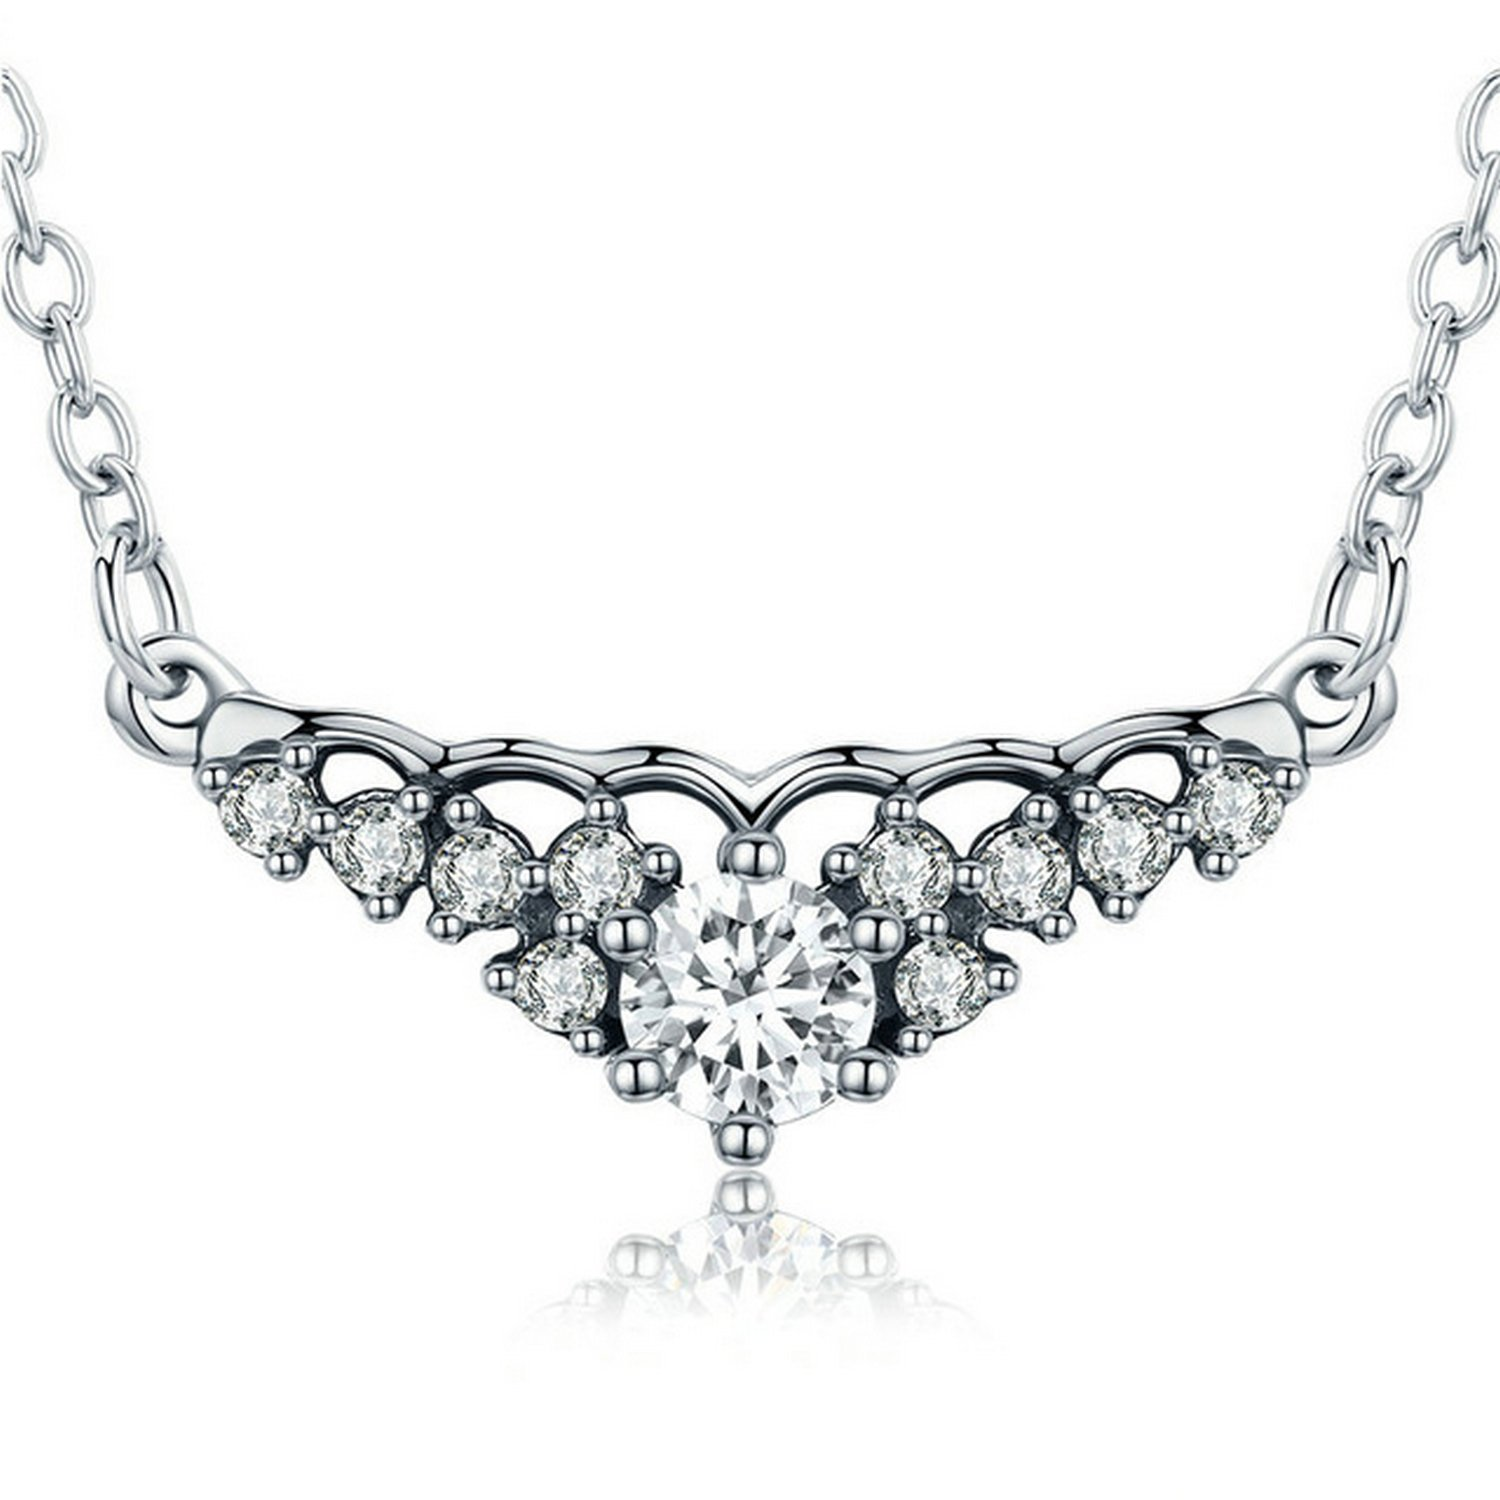 CS-DB Jewelry Silver Silver Fairytale Tiara Necklace Clear CZ Chain Charm Pendants Necklaces